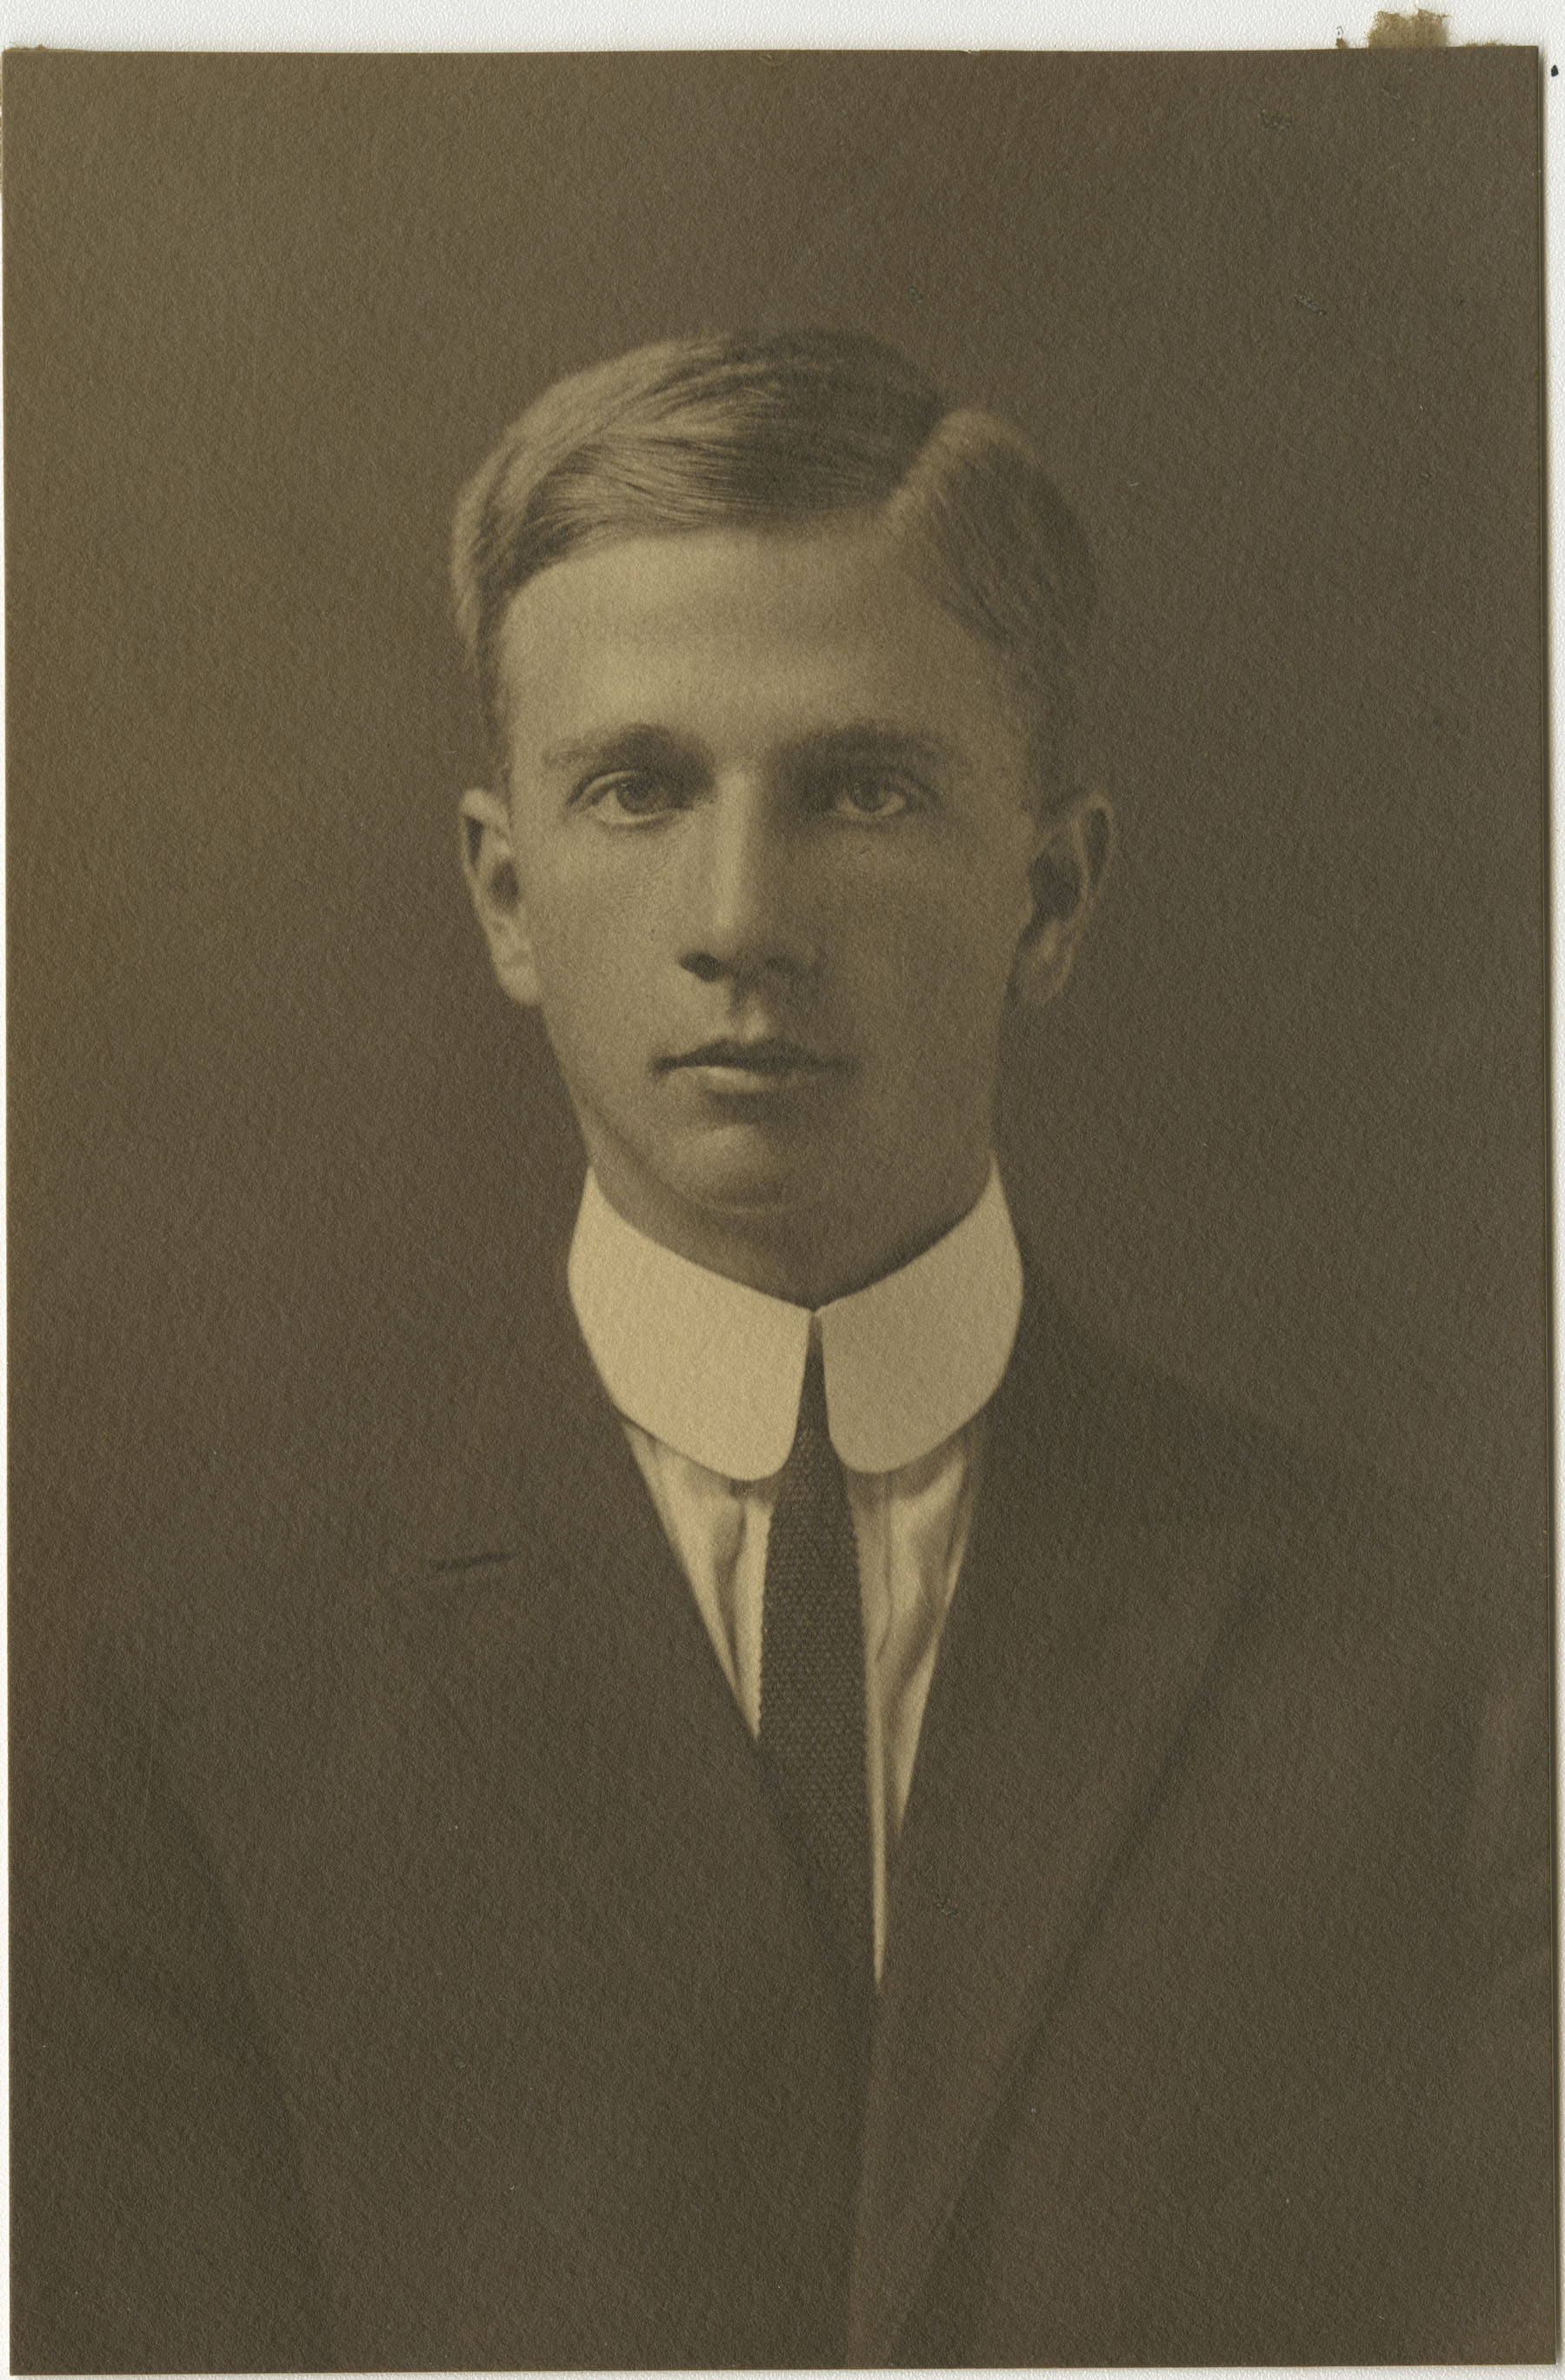 A Portrait of Unidentified Man 8